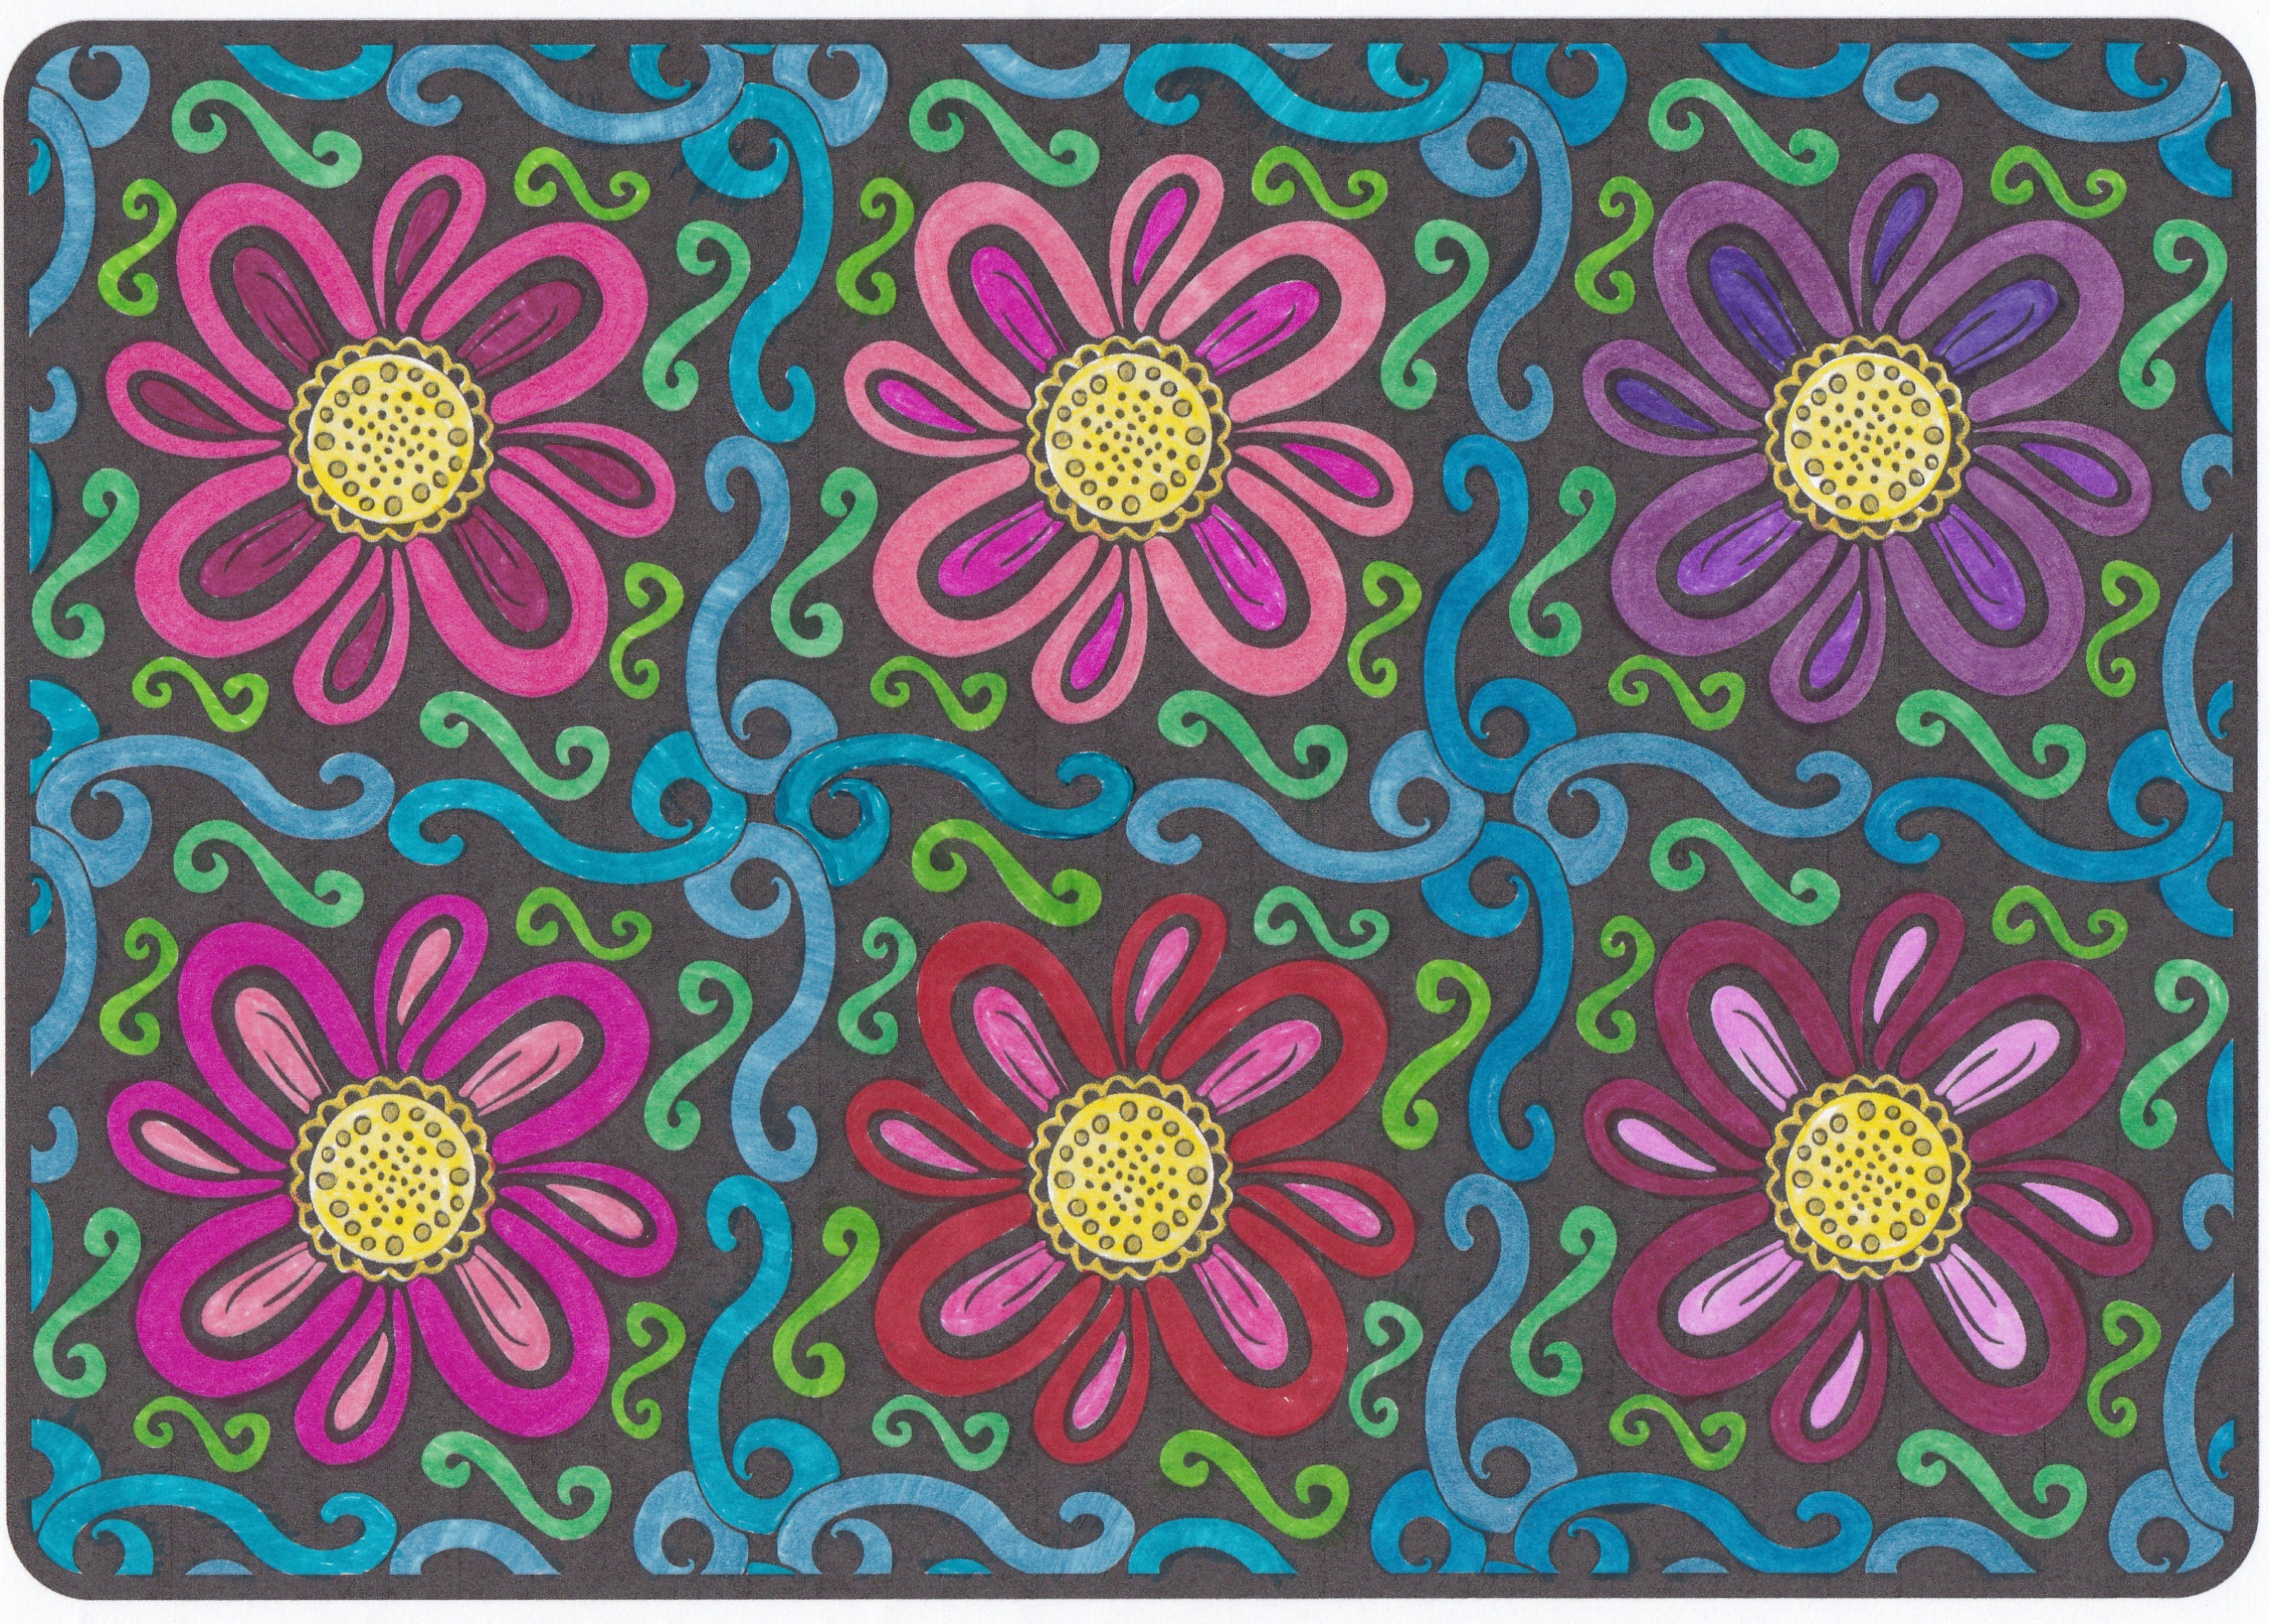 From OrnaMENTALs Lights Out, colored by Colleen Burns.